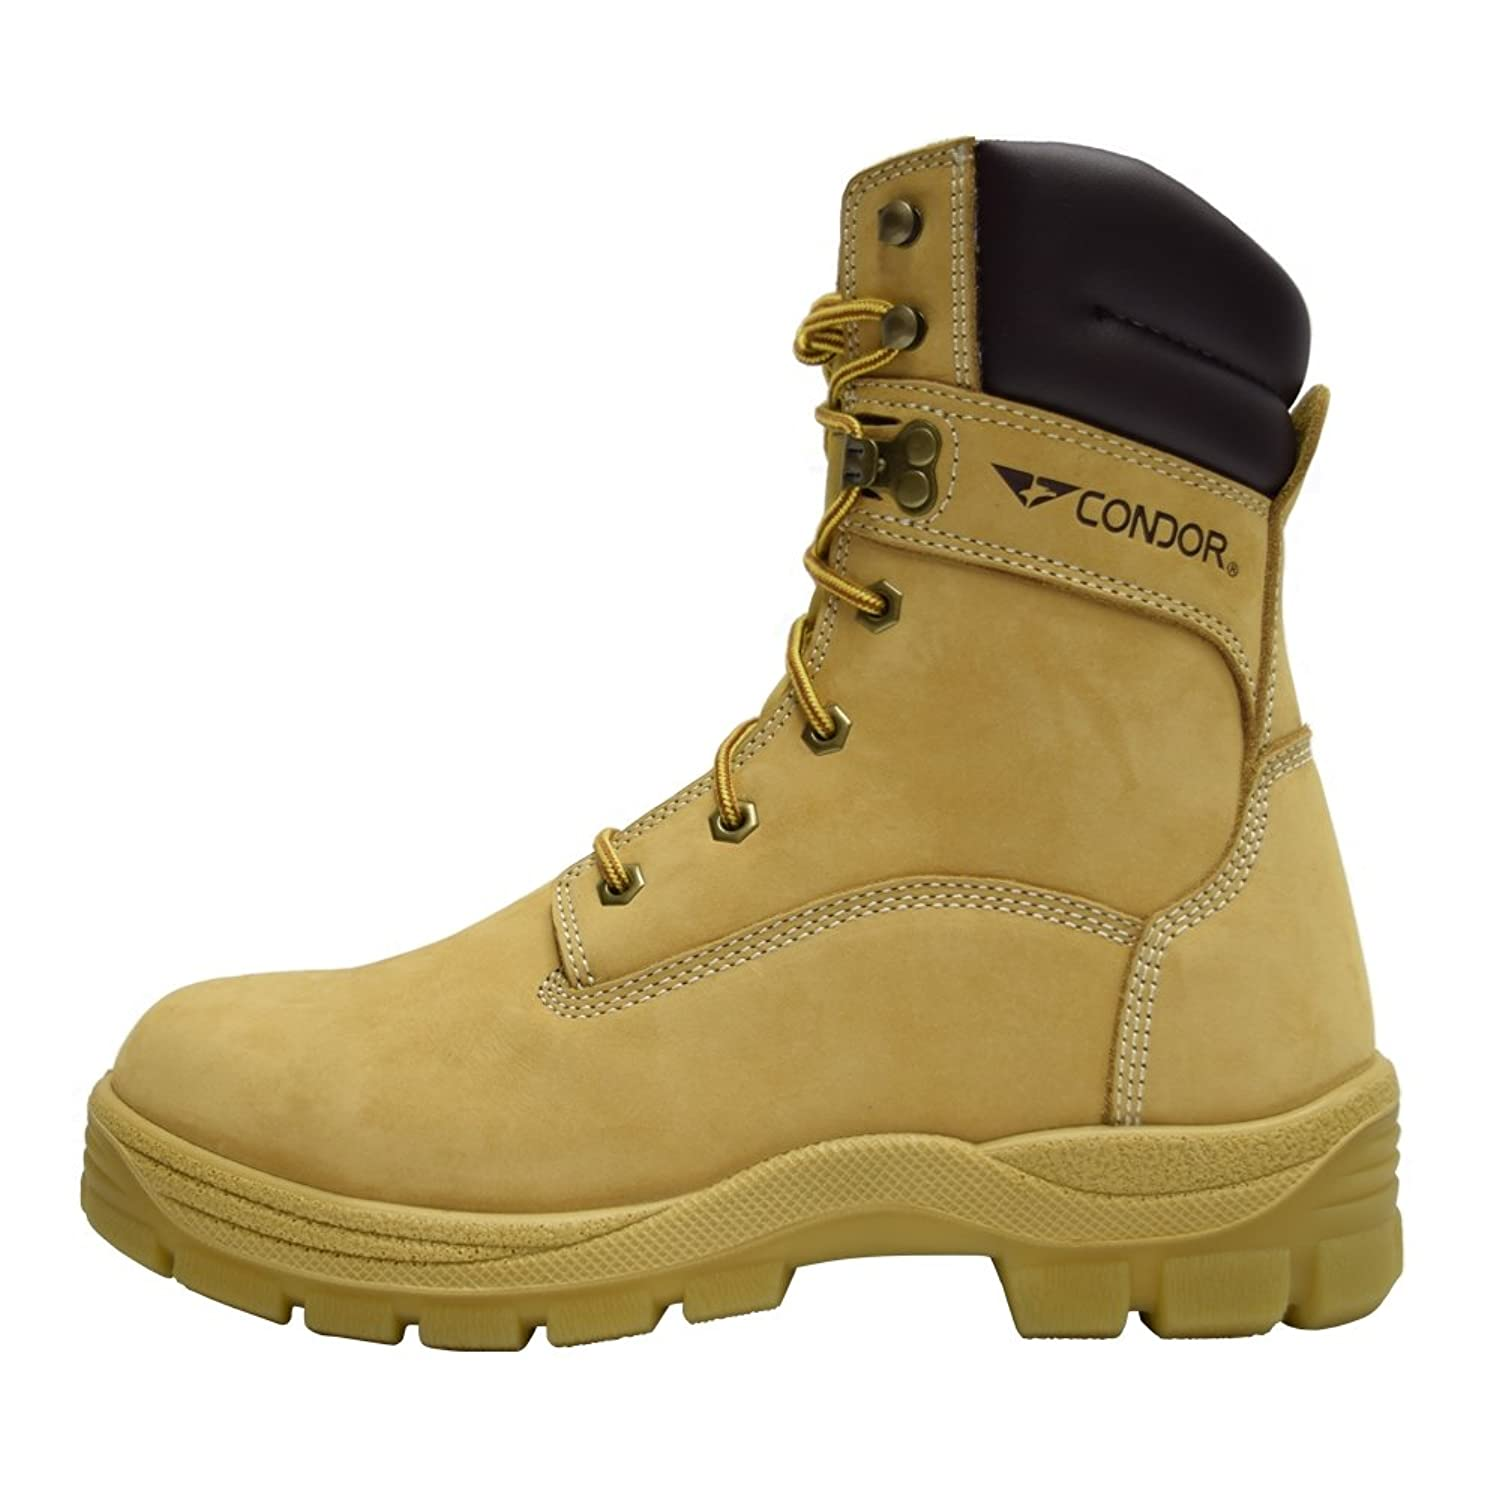 Ask Allen: Timberland 6 inch Boots in Wheat Nubuck or Dark